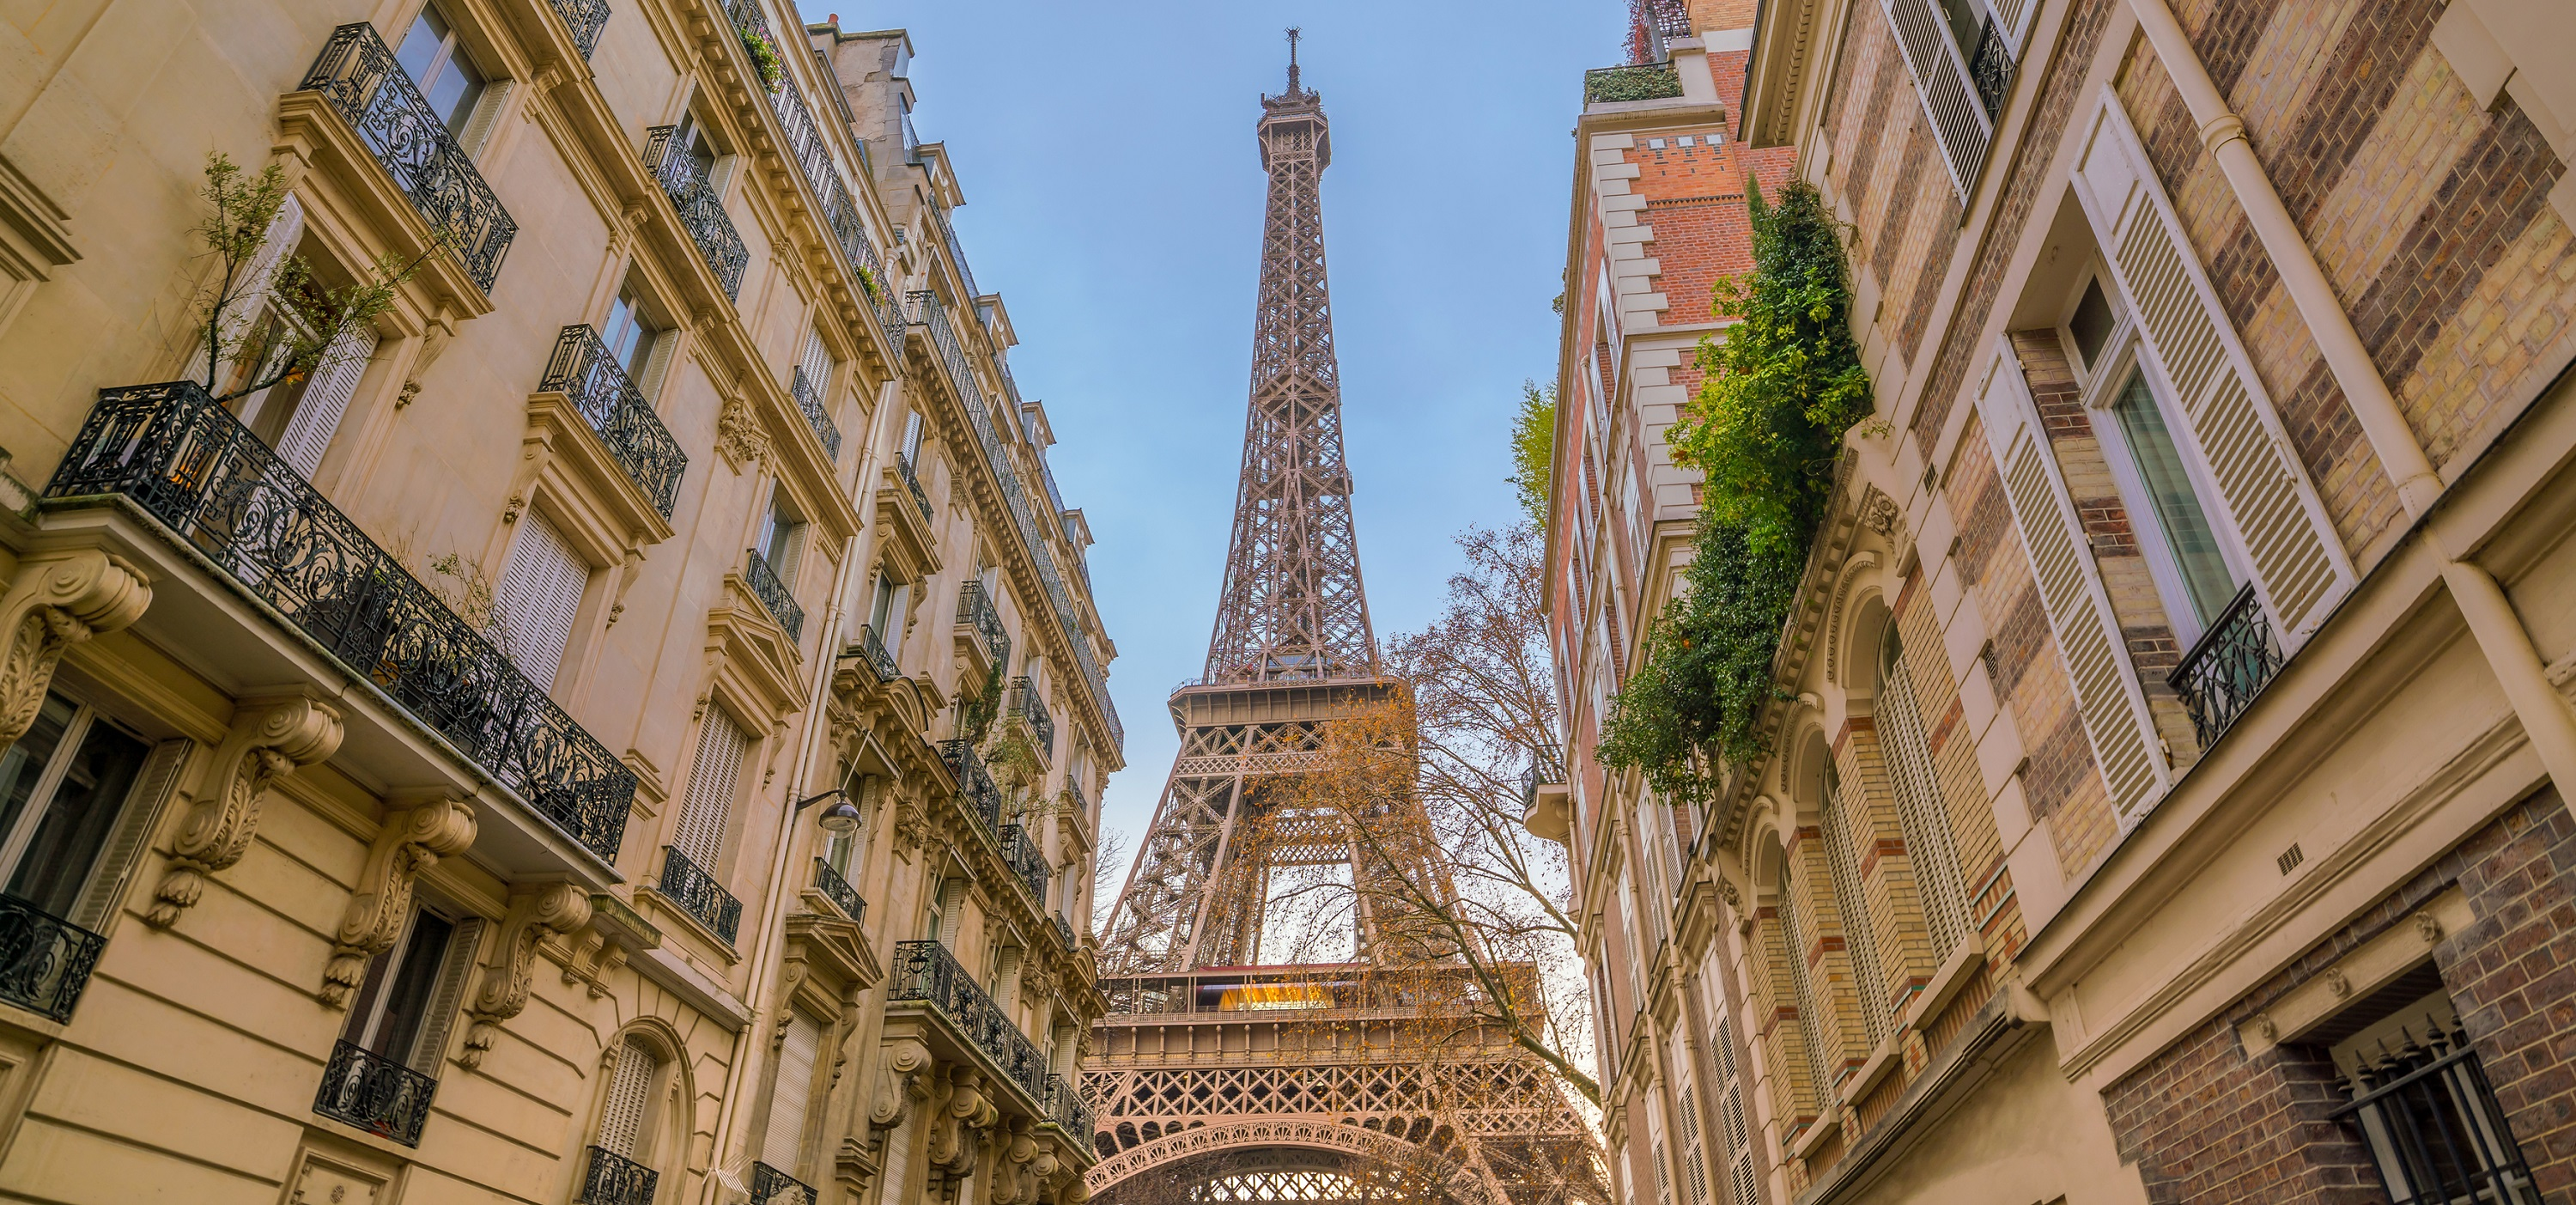 Paris | Global Living Report 2019 | CBRE